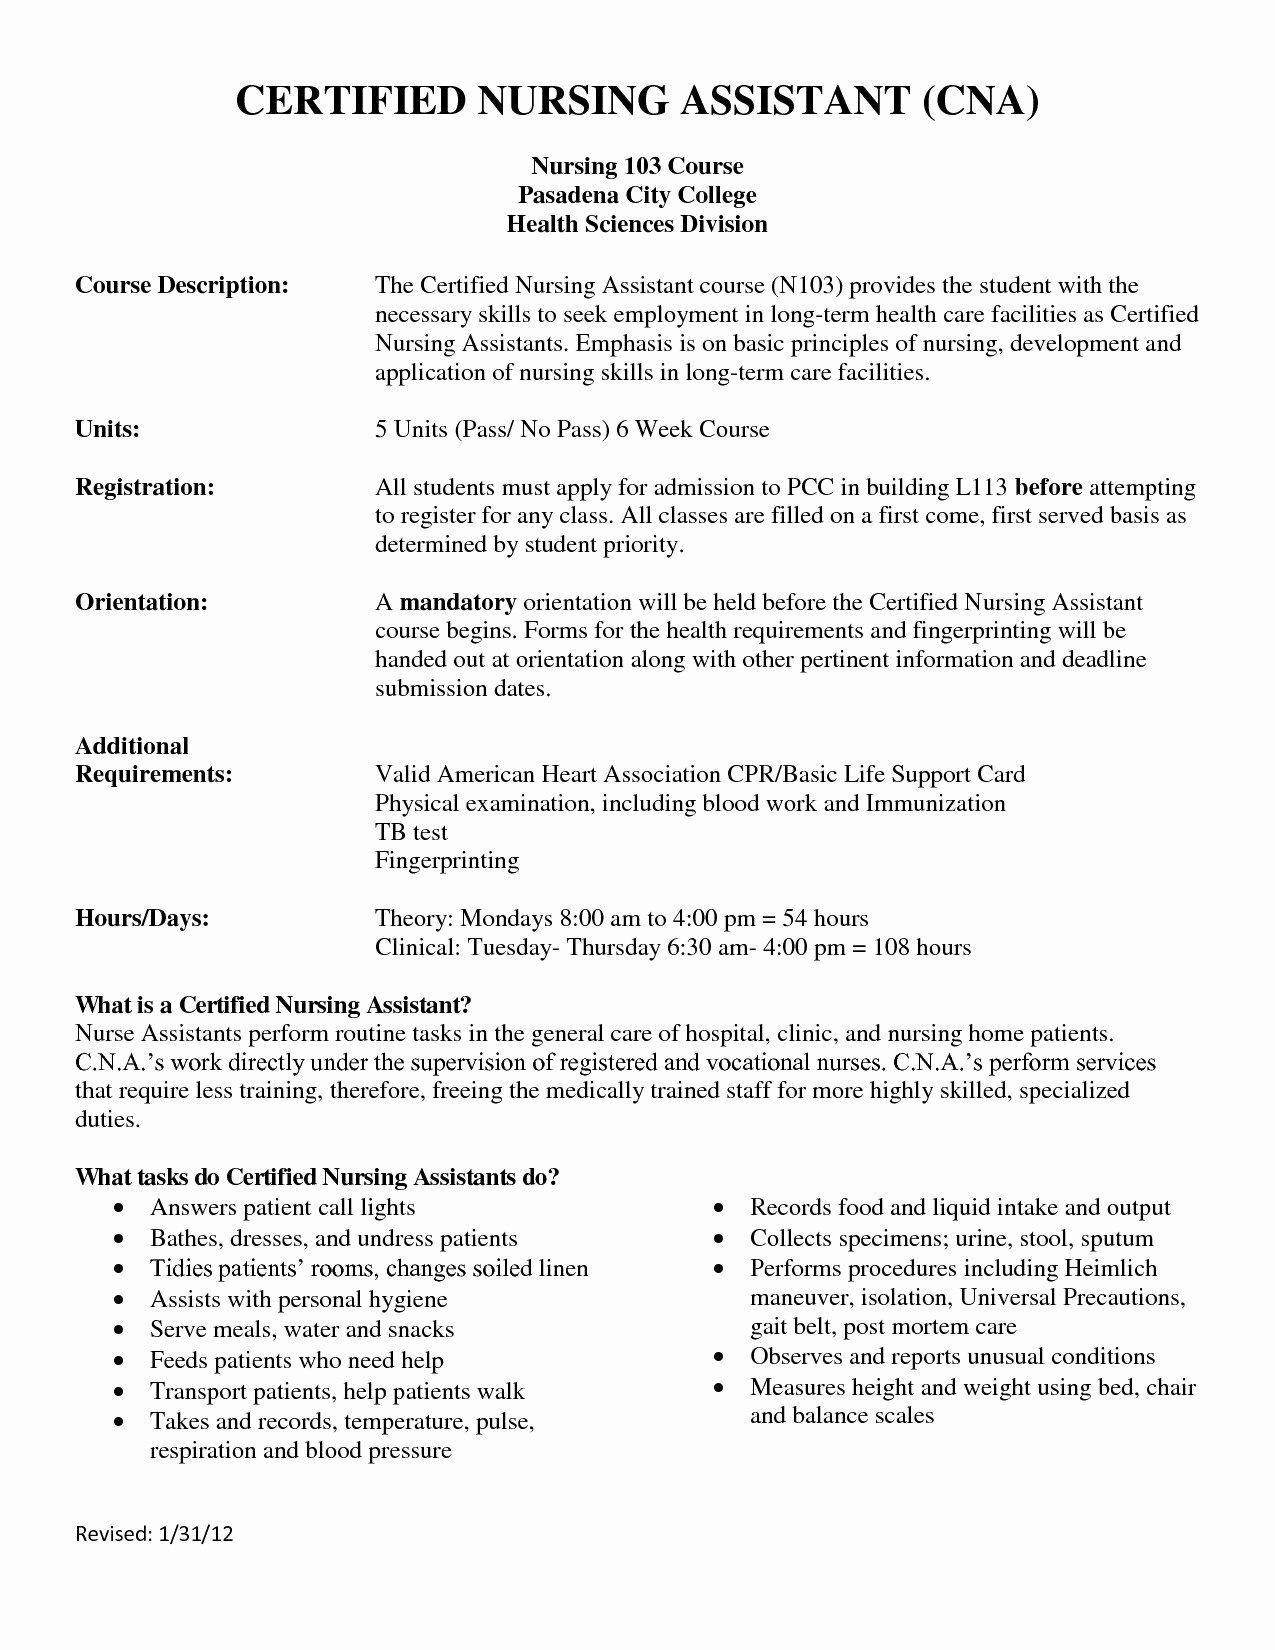 22 Inspirational Labor and Delivery Nurse Resume